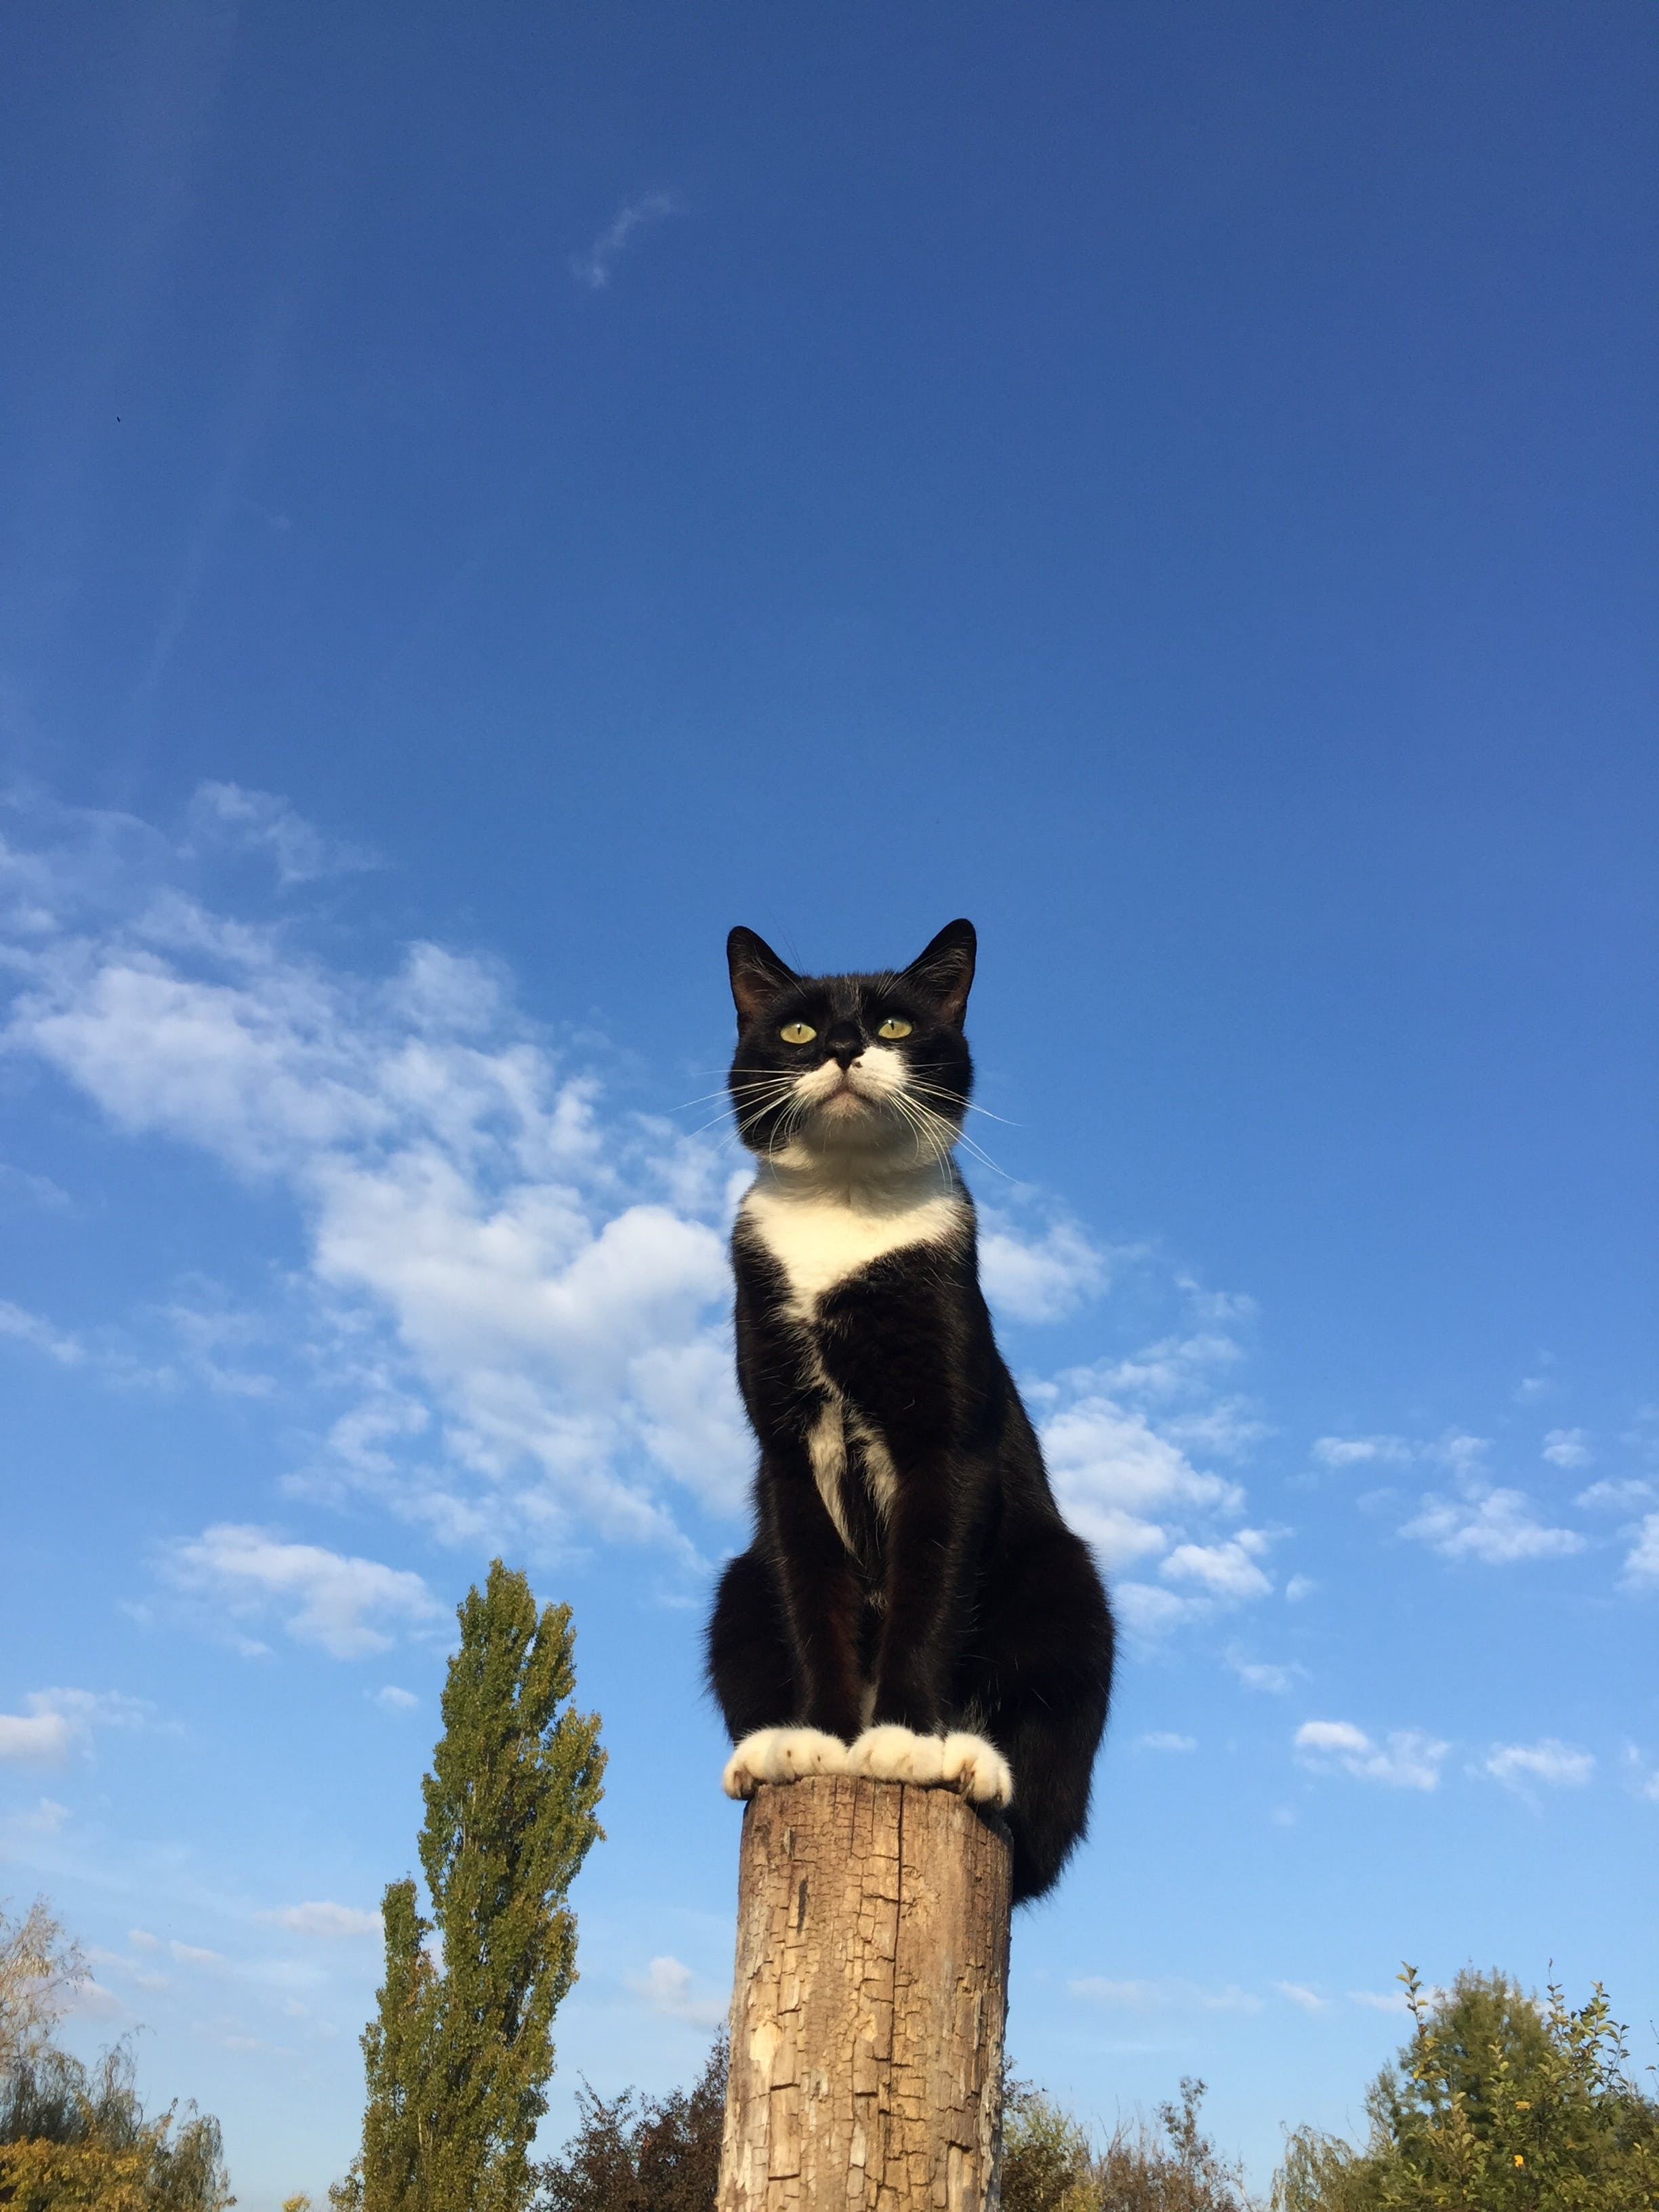 Free stock photo of blue sky, cat, post, sitting